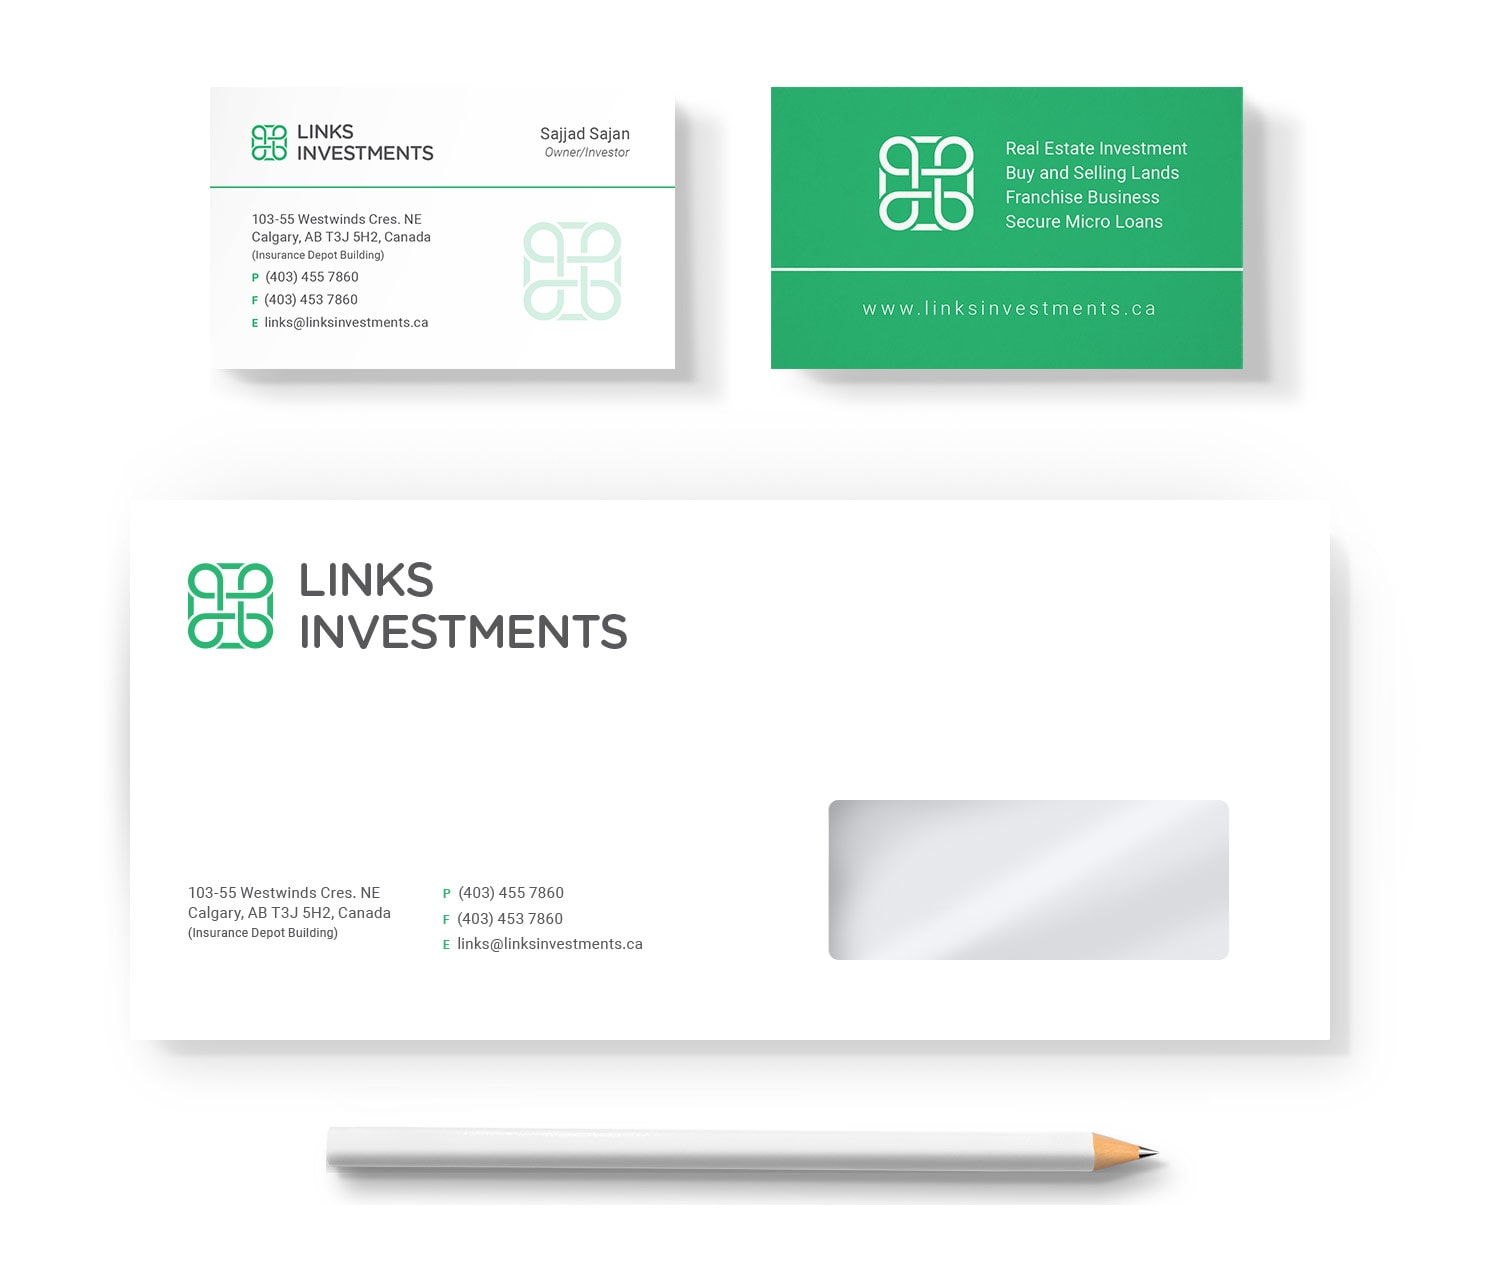 Links Investments Stationery Design